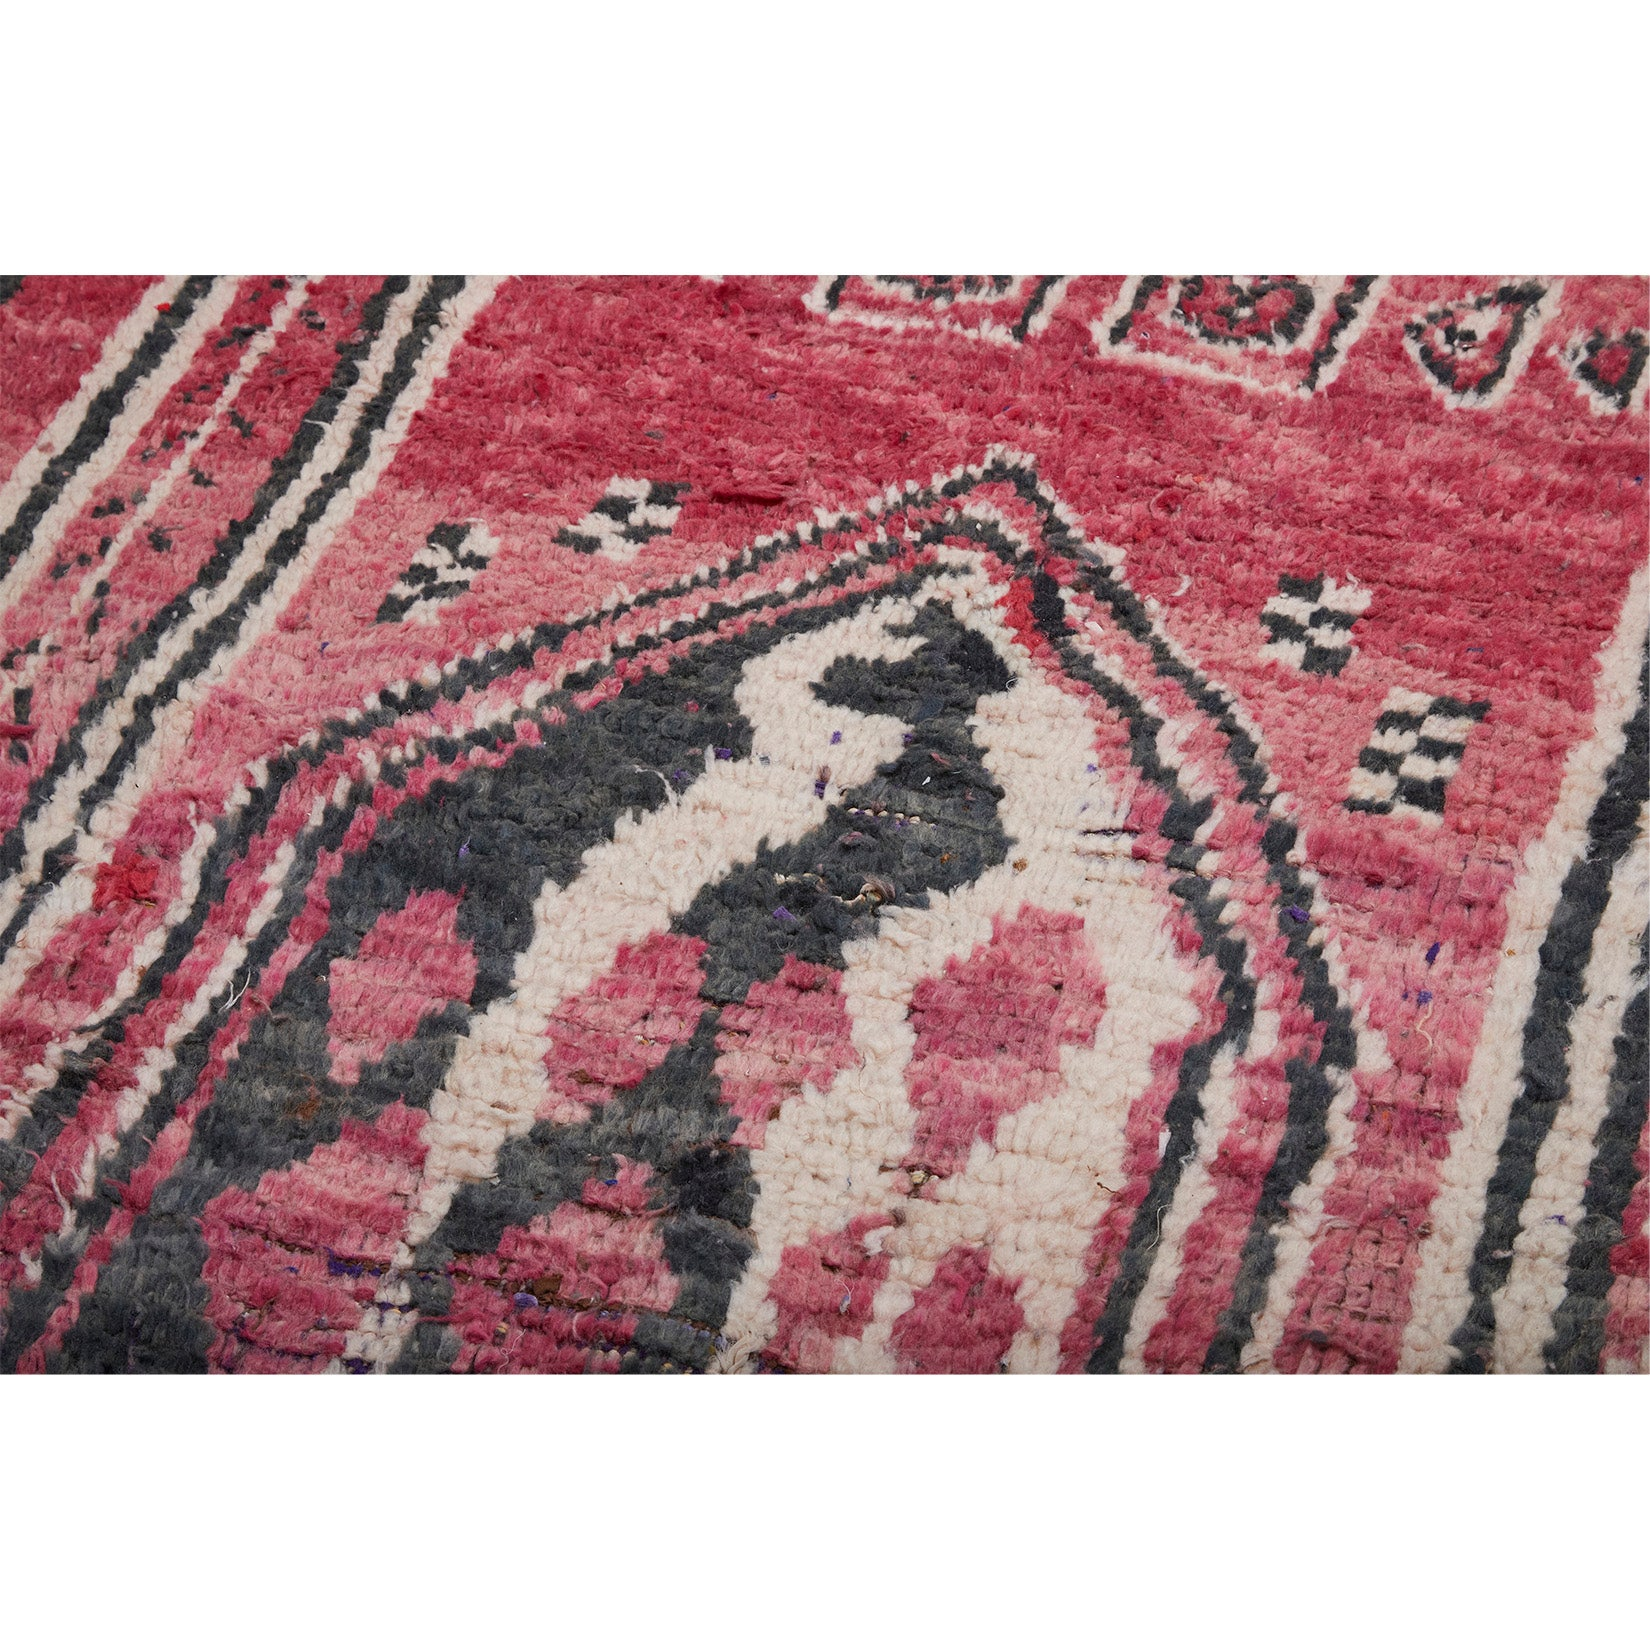 Red vintage Moroccan rug with black and white details - Kantara | Moroccan Rugs